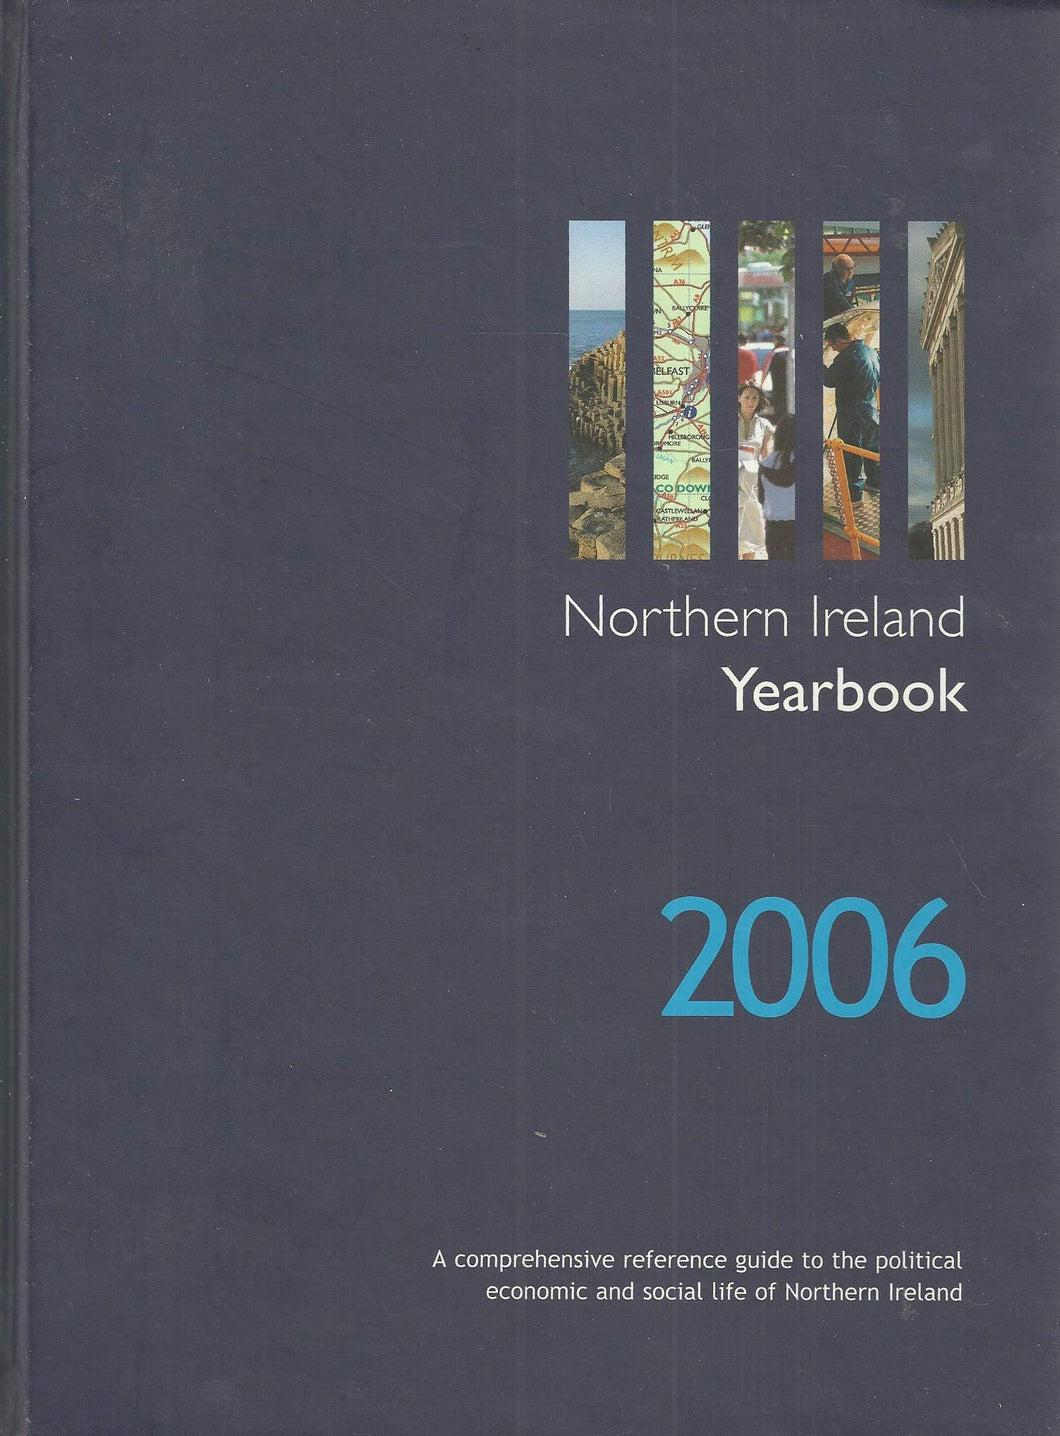 Northern Ireland Yearbook 2006: A Comprehensive Reference Guide to the Political, Economic and Social Life of Northern Ireland